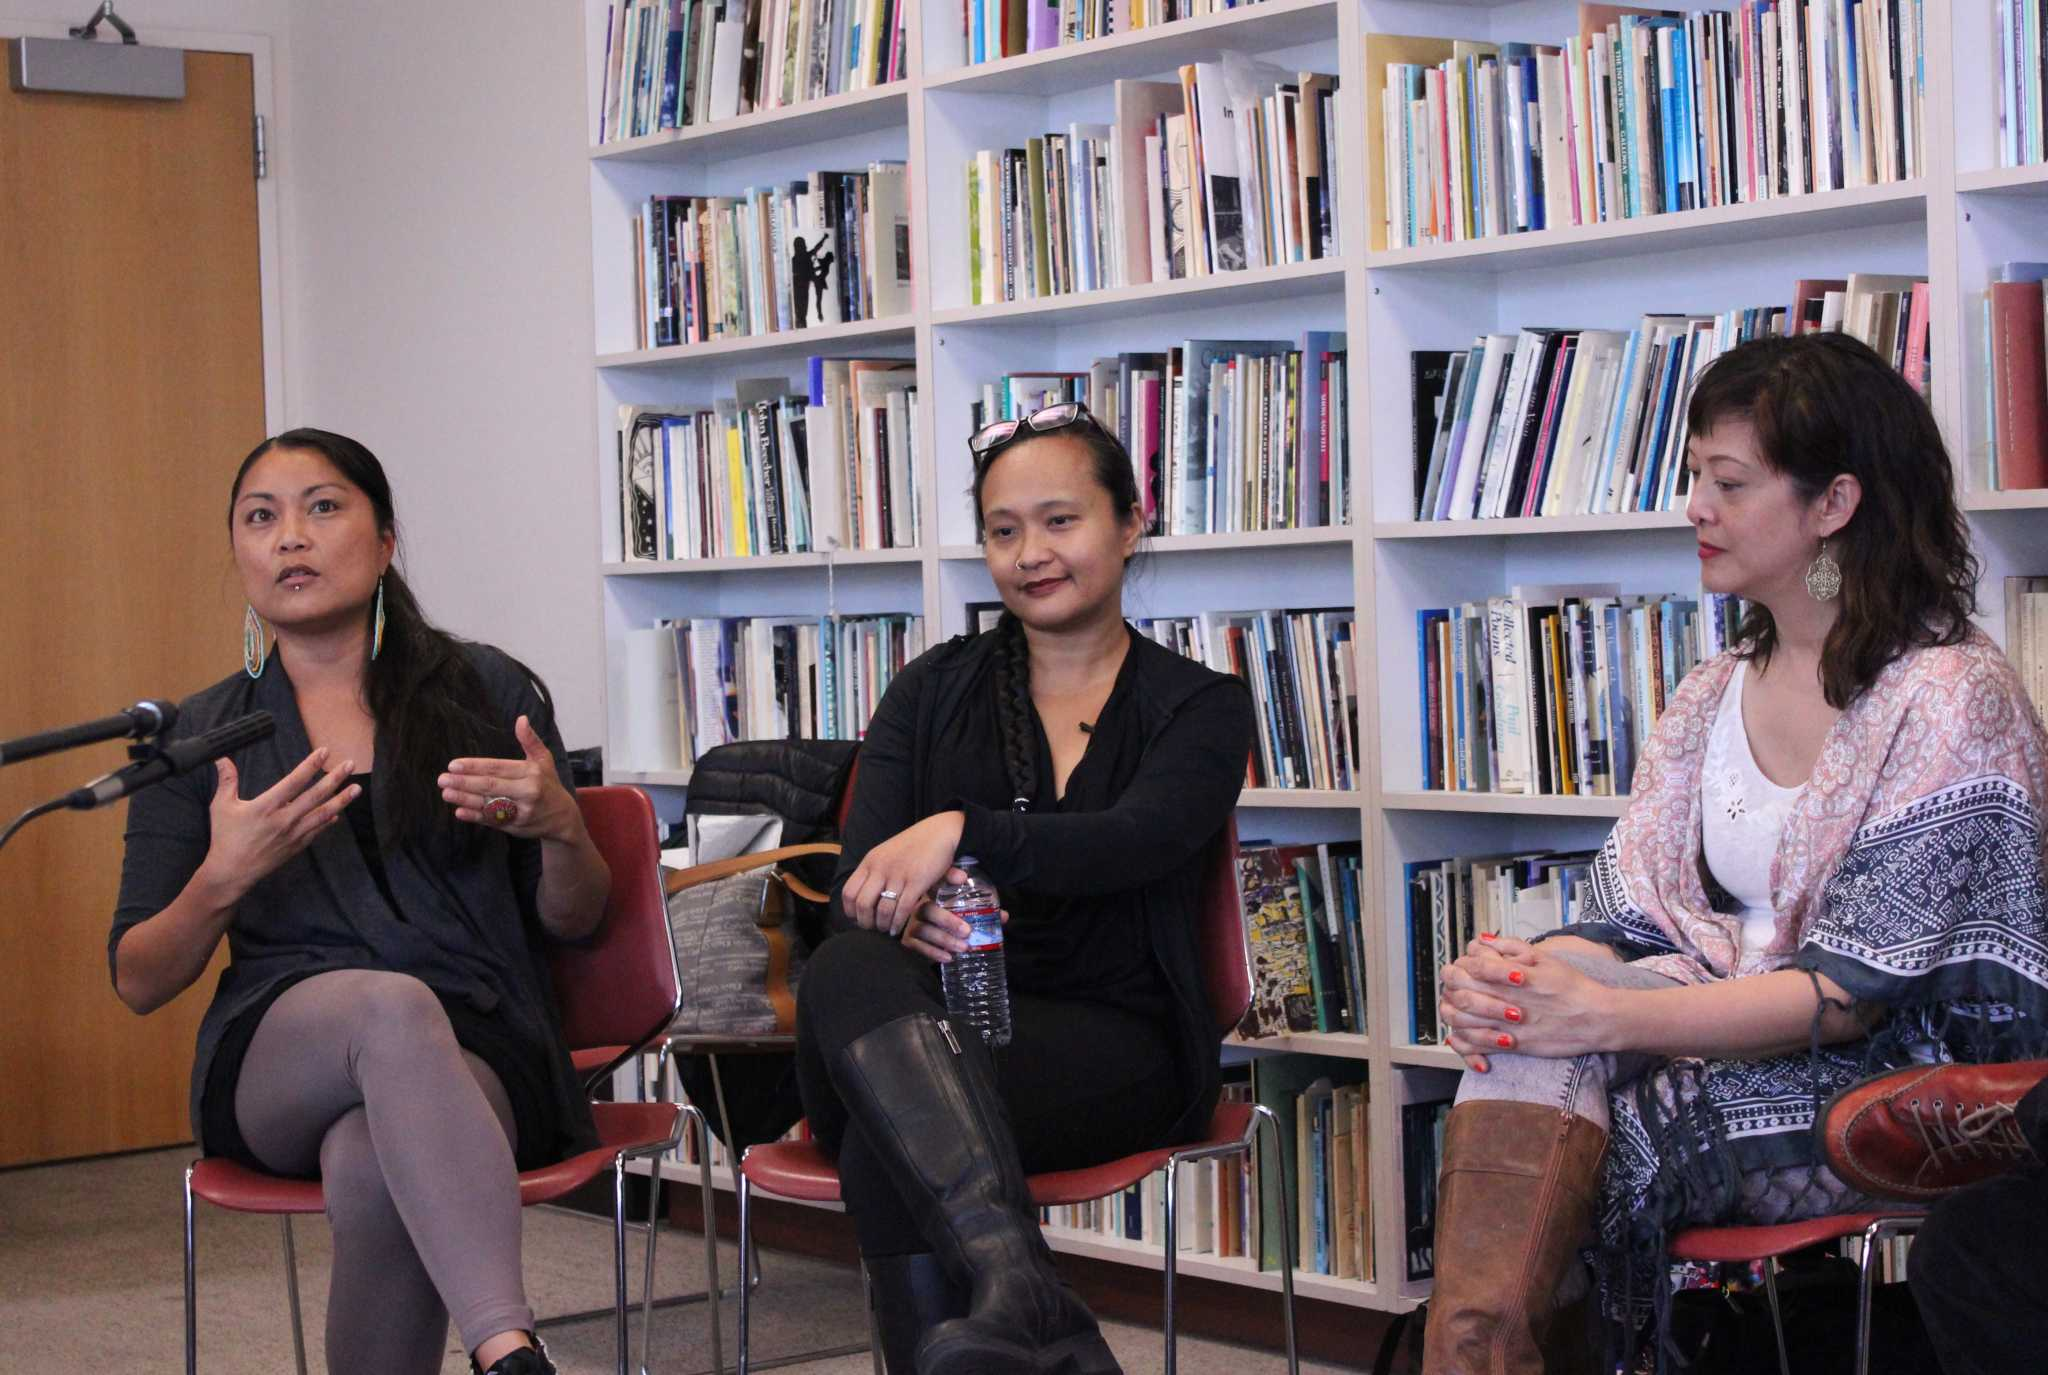 Poets at Kuwentuhan Talkstories on Thursday, April 21, 2016 (Cecilie Lyngberg / Xpress)